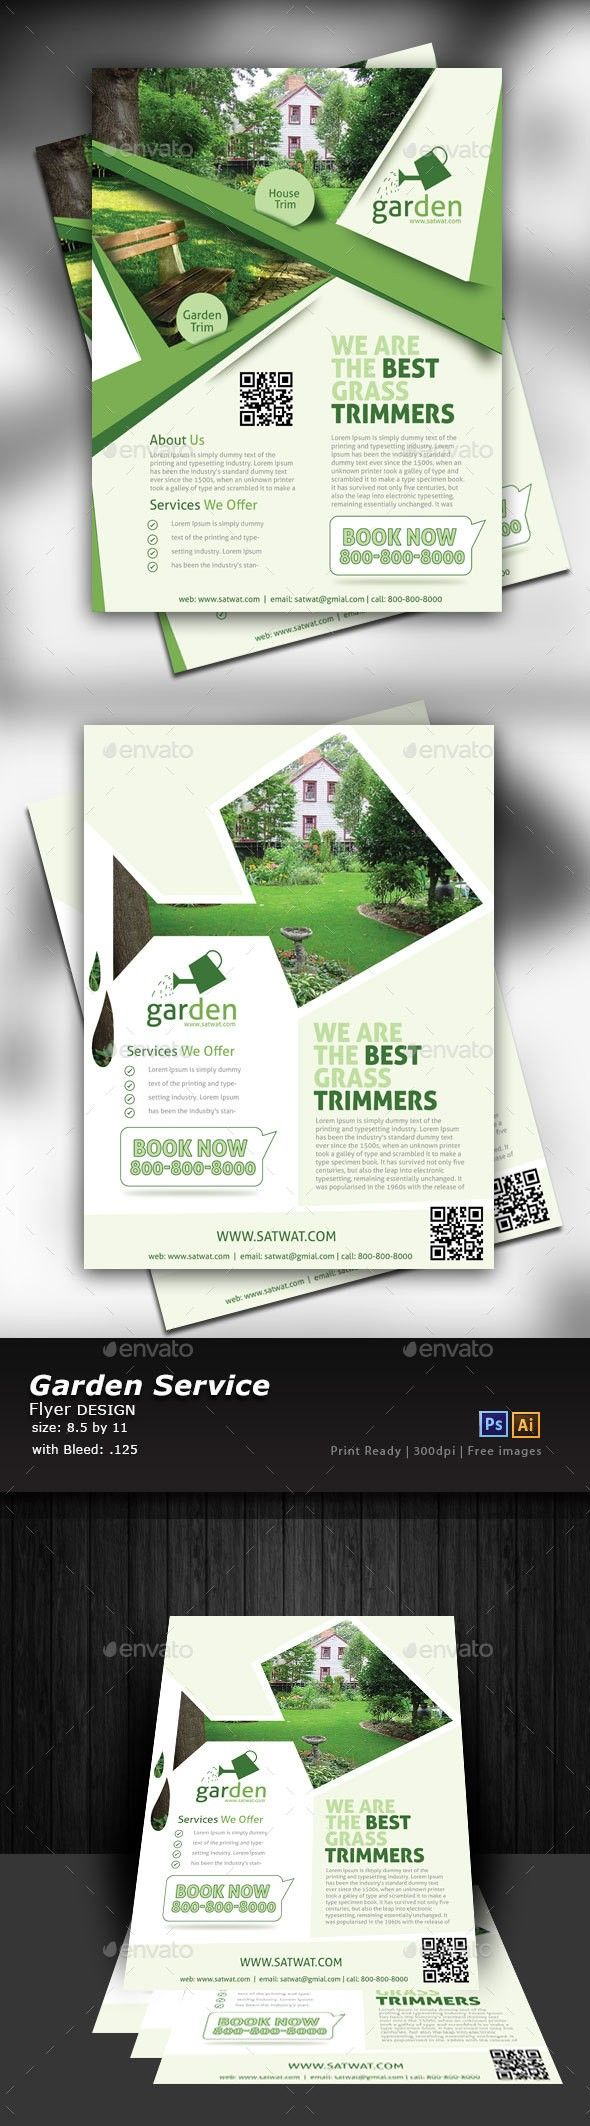 pin by lisa brown on colorful flyer design pinterest flyer template flyer design and lawn care